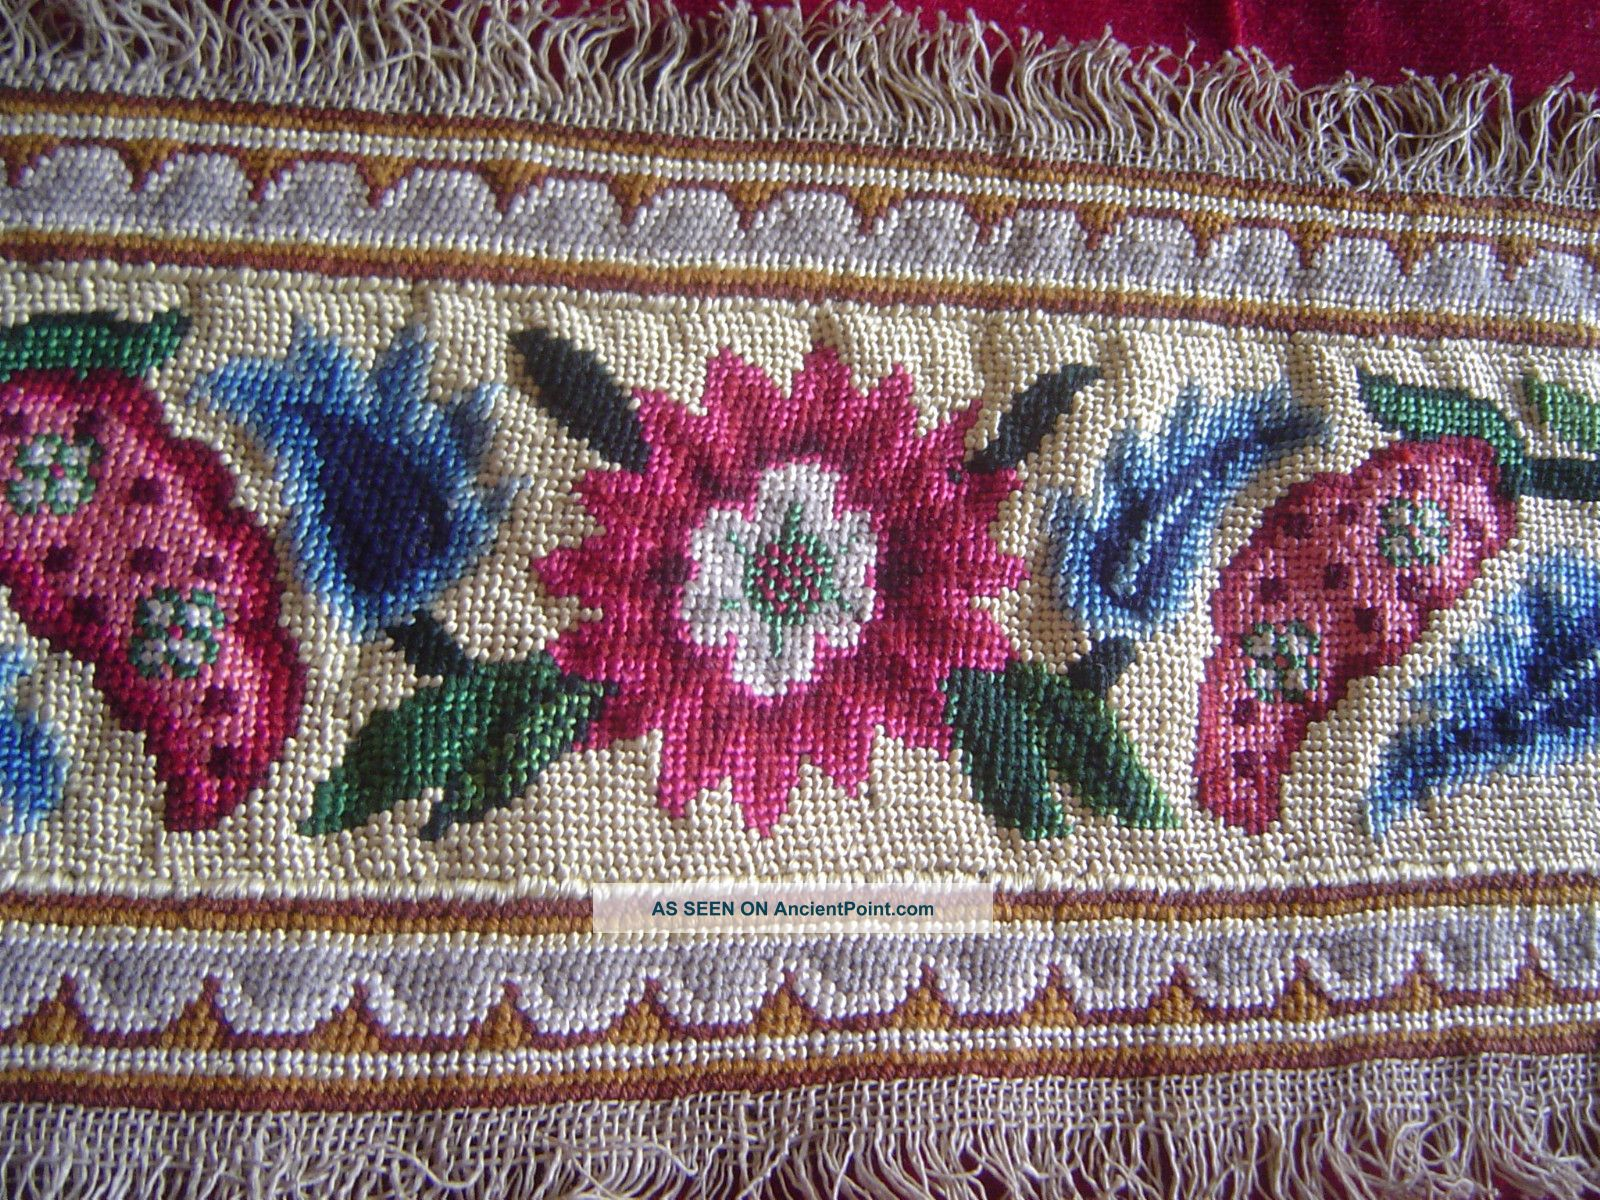 Antique Silk And Wool Needlework 1 Yard Embroidery photo